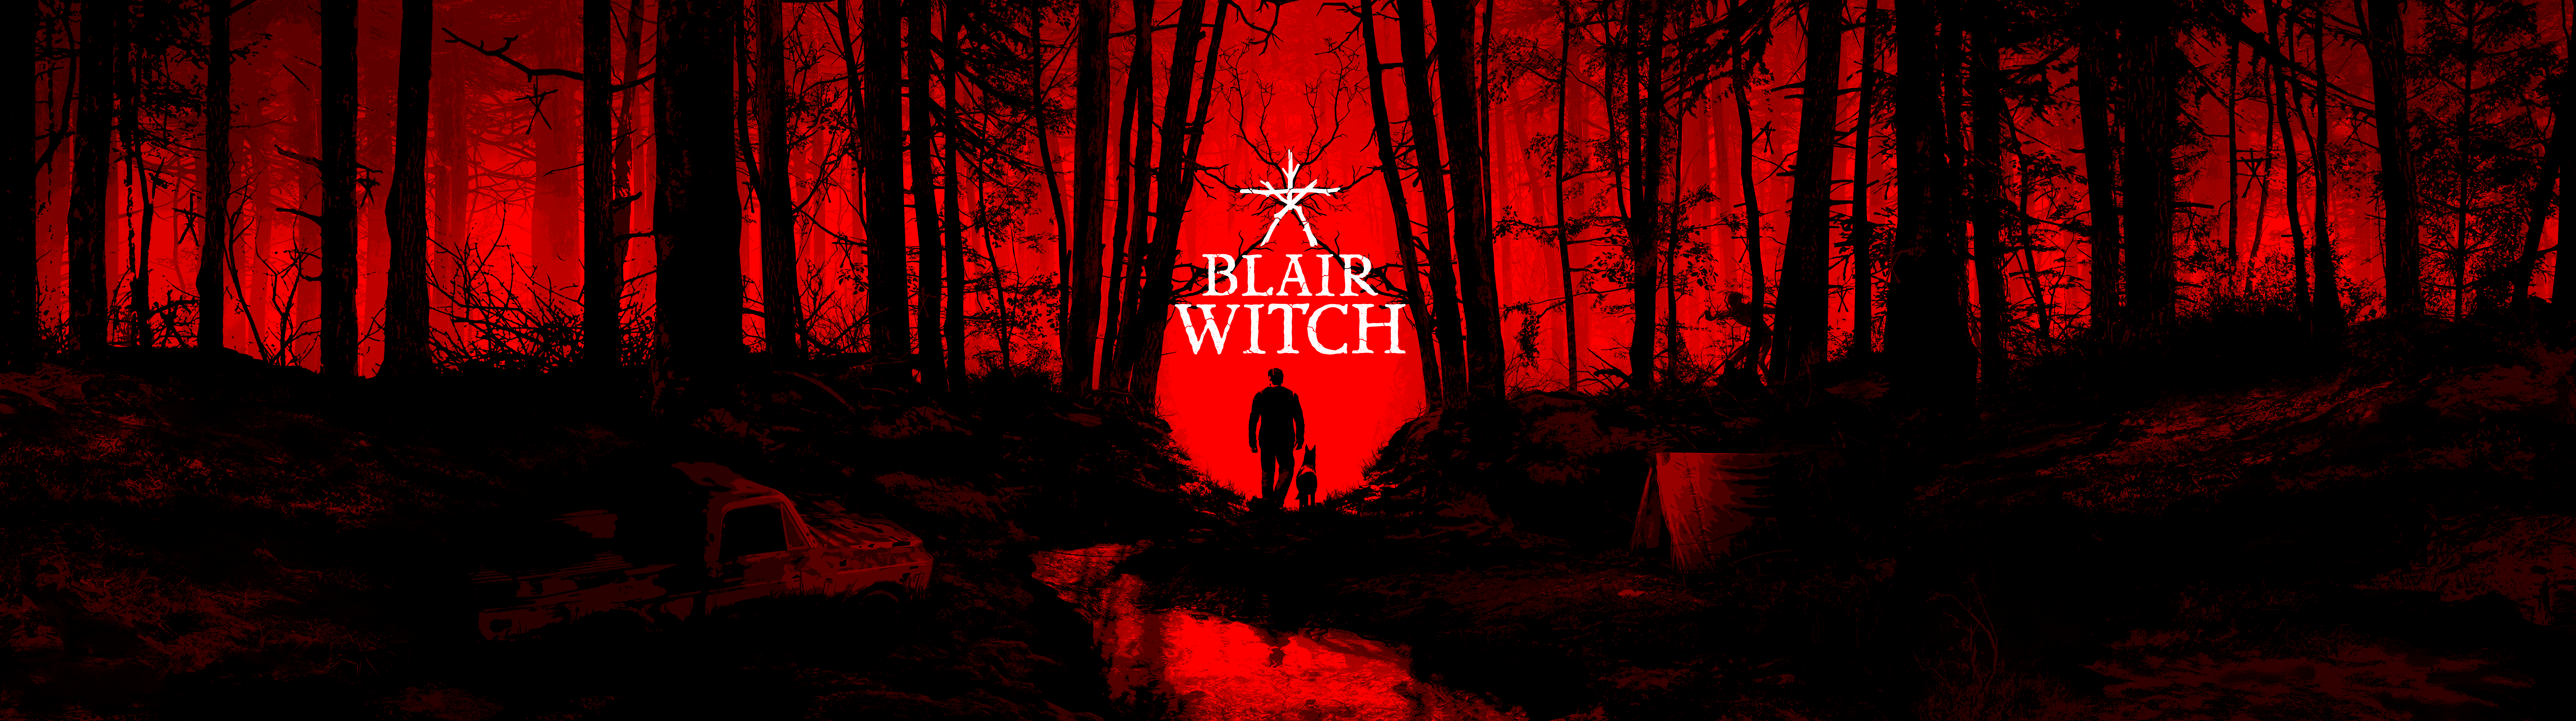 Blair Witch Review - ming Magazine on